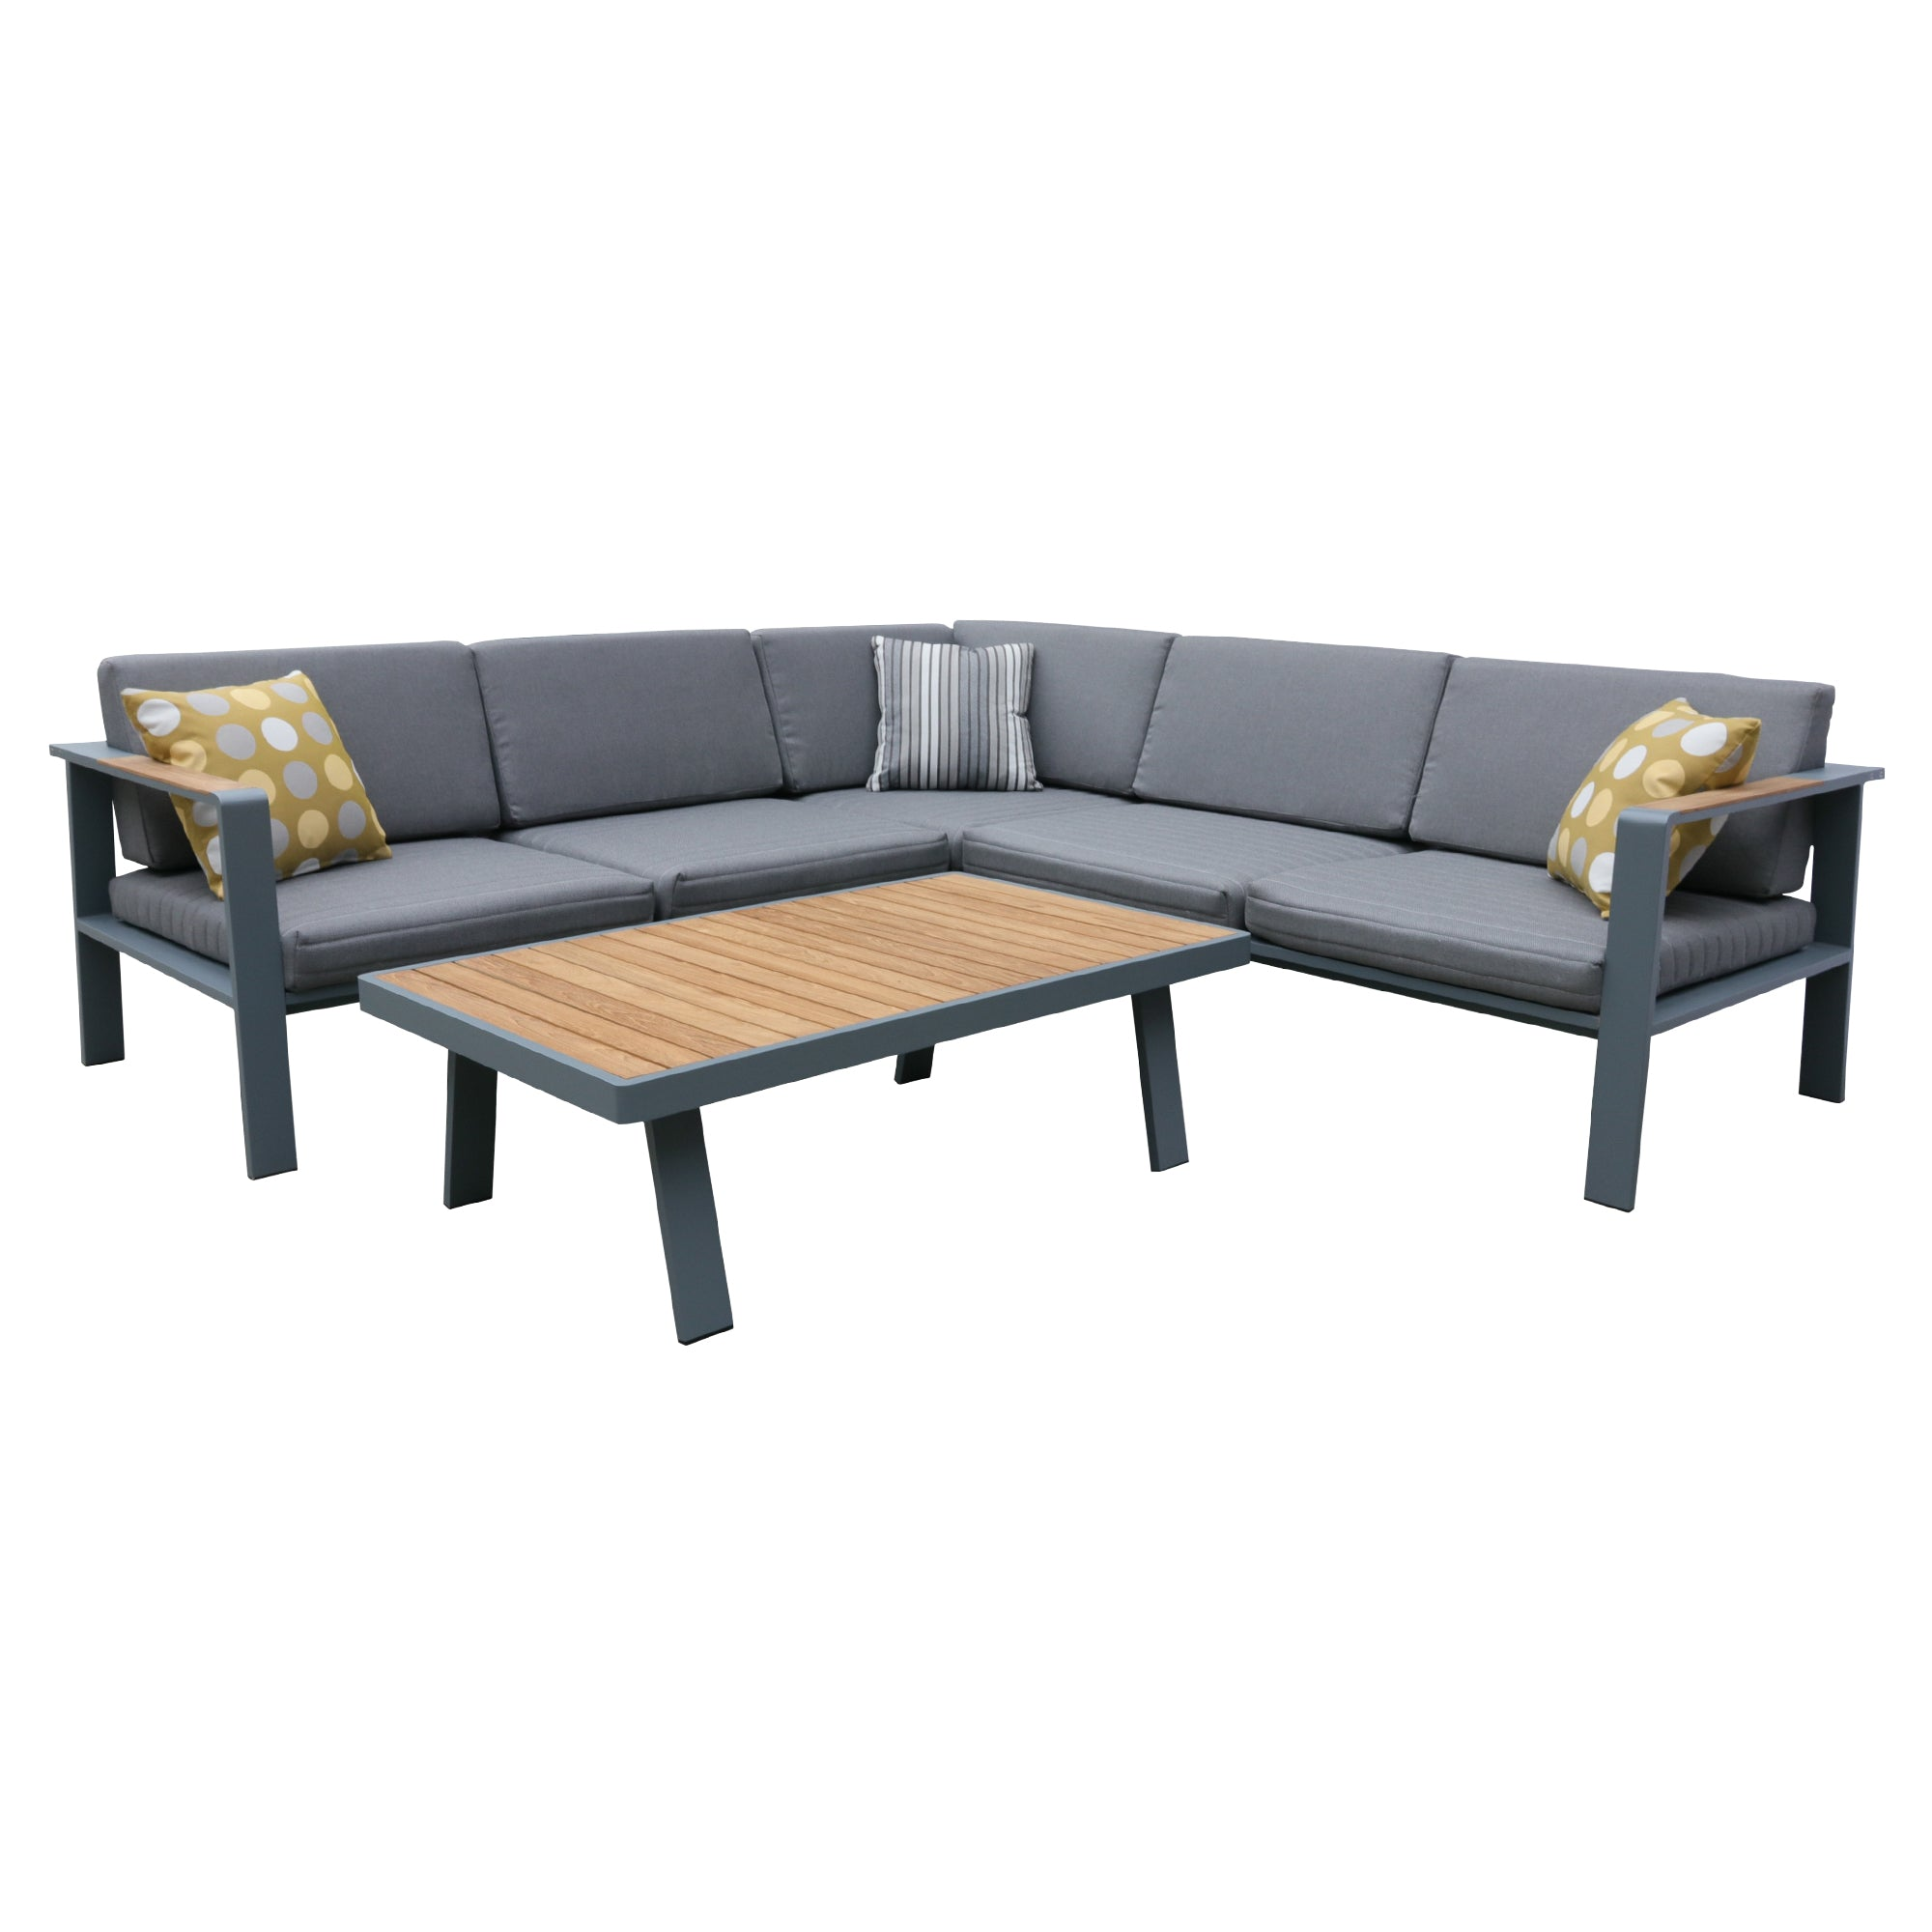 Outdoor Patio Sectional Set Charcoal Nofi Product Picture 2190. Order here.